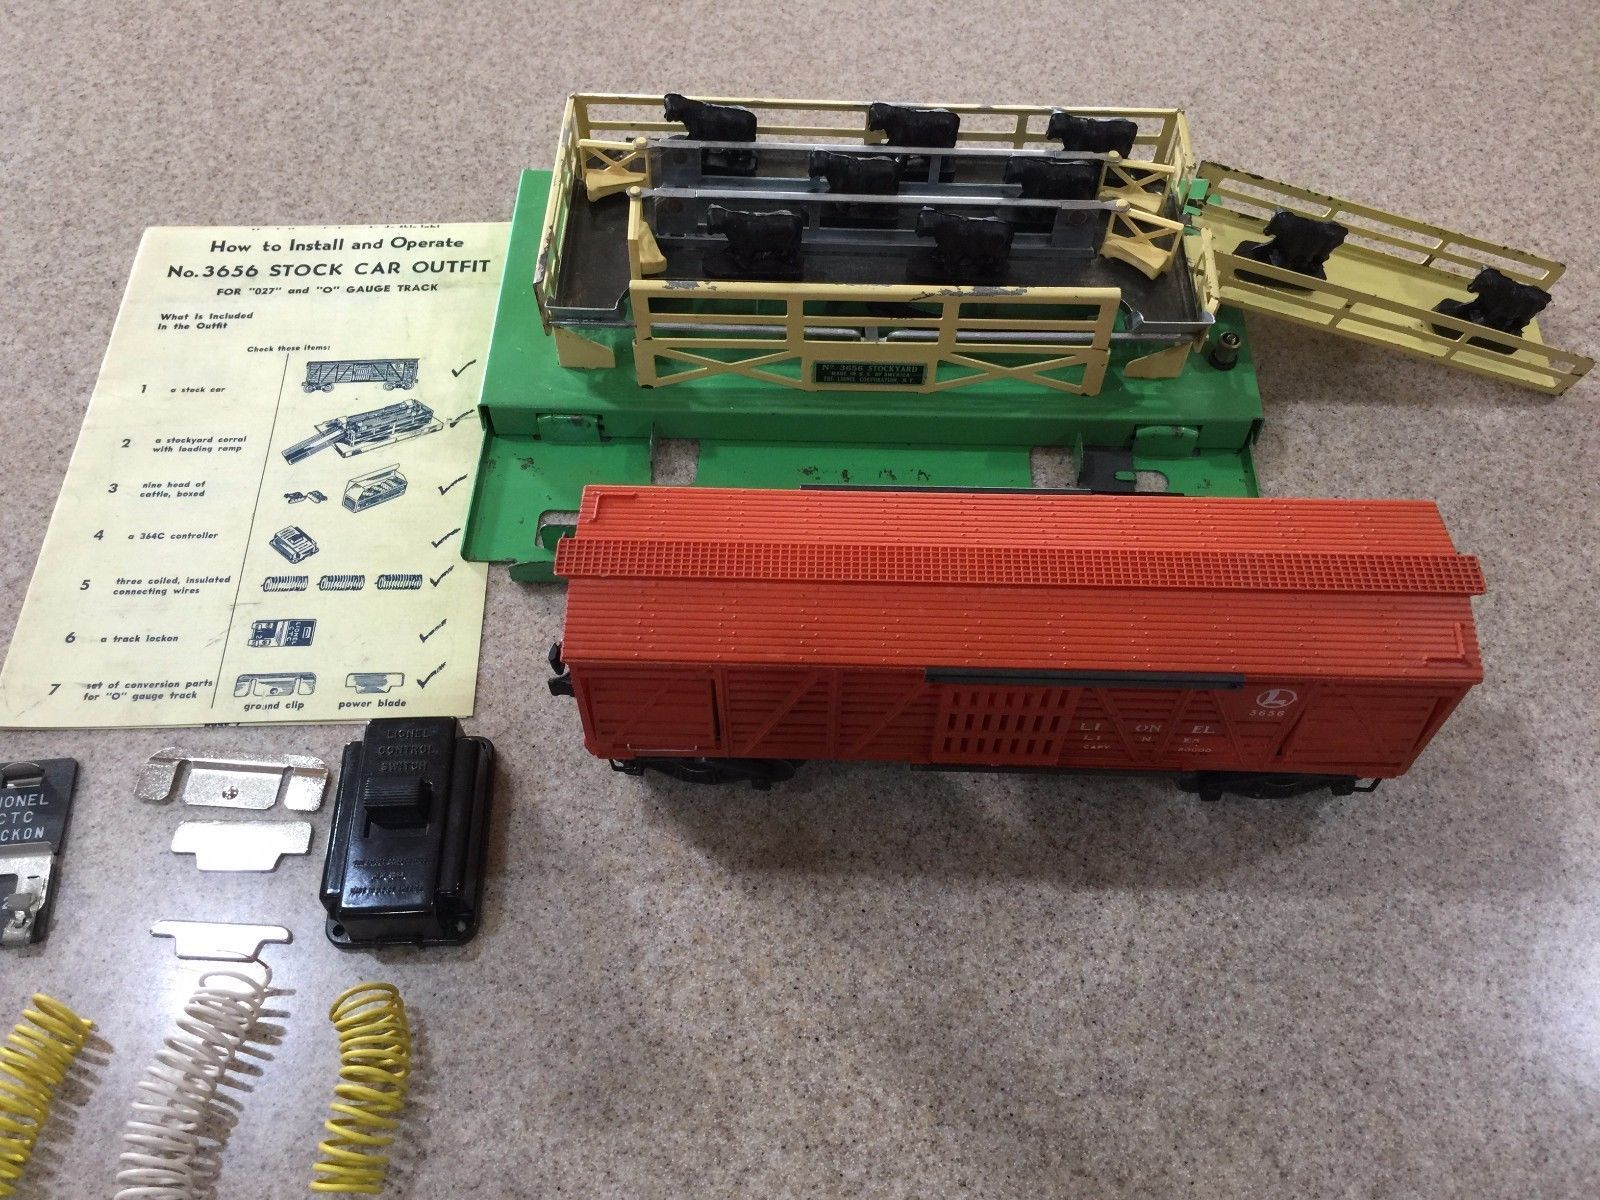 Lionel cattle car wiring wiring info lionel cattle car wiring images gallery cheapraybanclubmaster Gallery